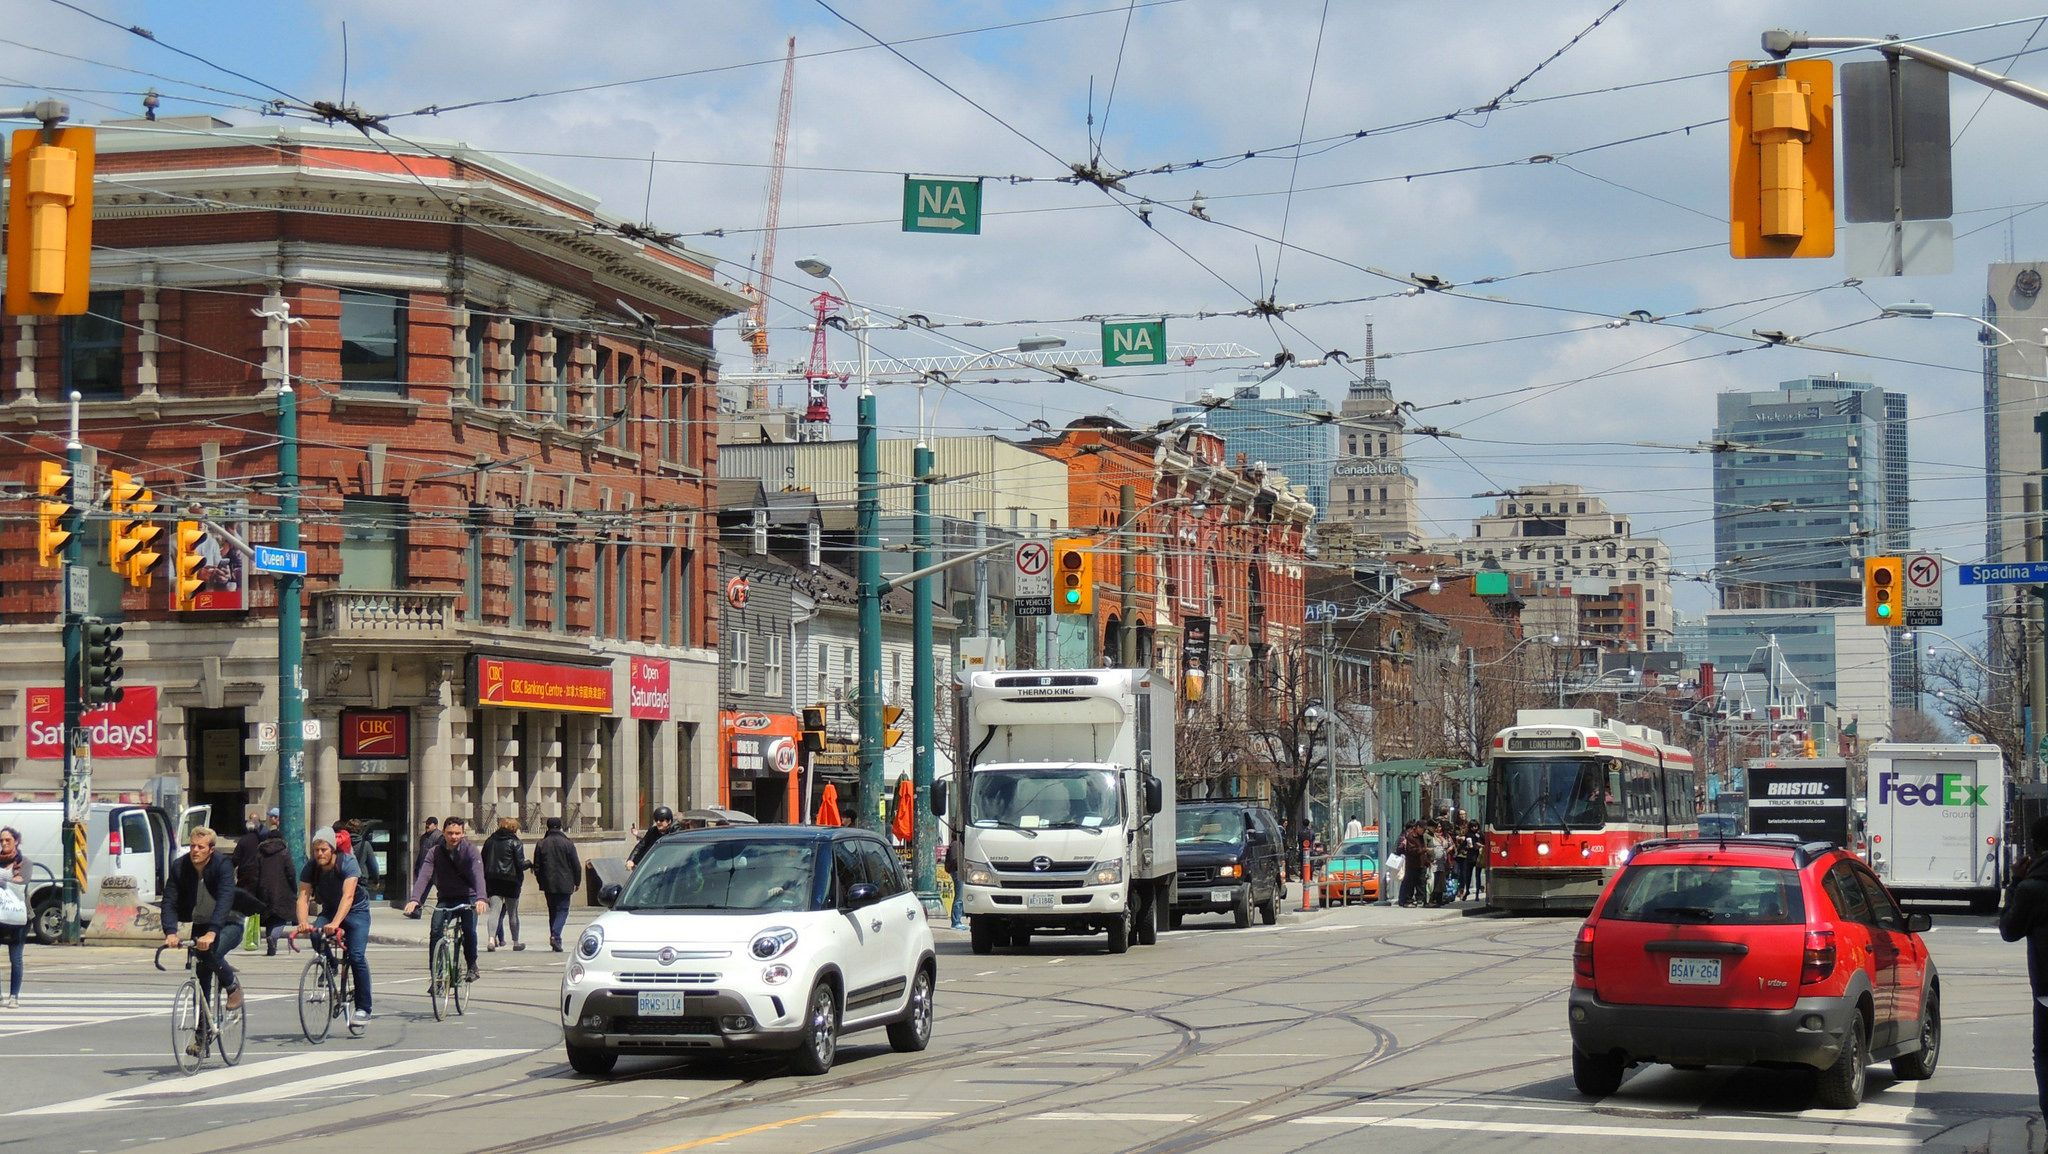 .... Queen Street West describes both the western branch of Queen Street, a major east-west thoroughfare, and a series of neighbourhoods or commercial districts, situated west of Yonge Street in downtown Toronto, Ontario, Canada.